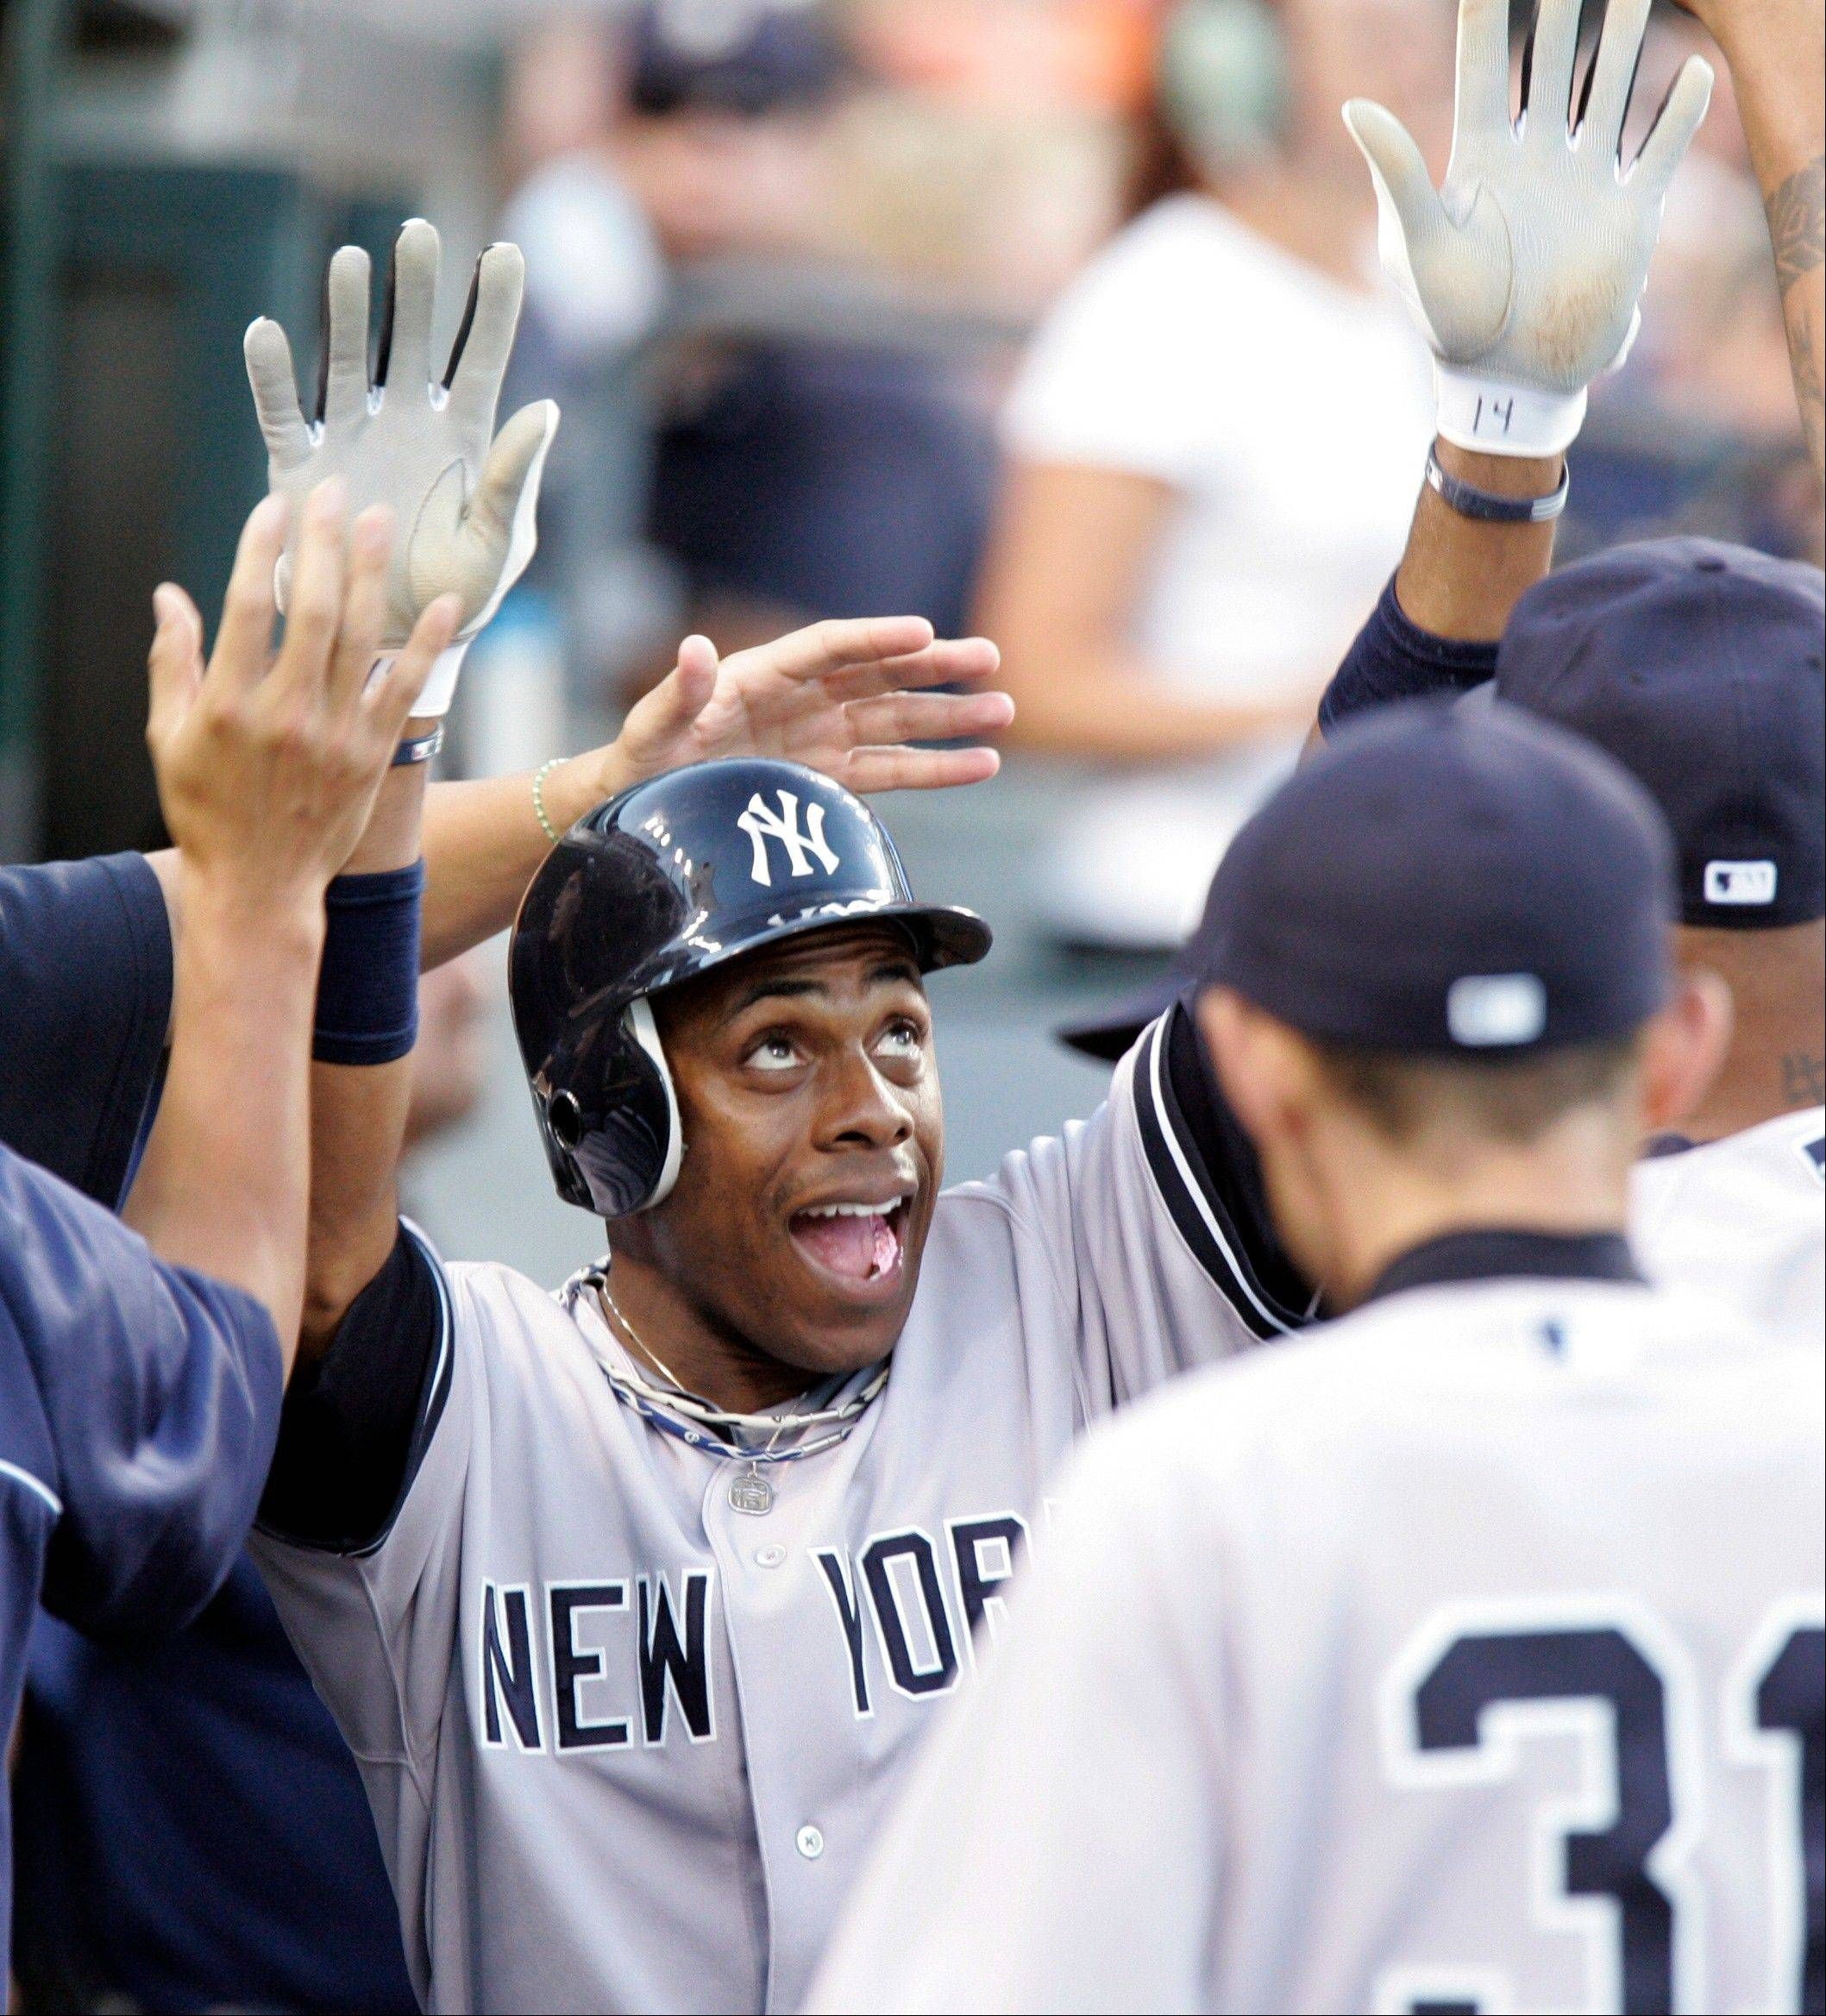 The New York Yankees� Curtis Granderson batted .229 with seven homers and 15 RBIs this year, when wrist and hand injuries limited him to 61 games.